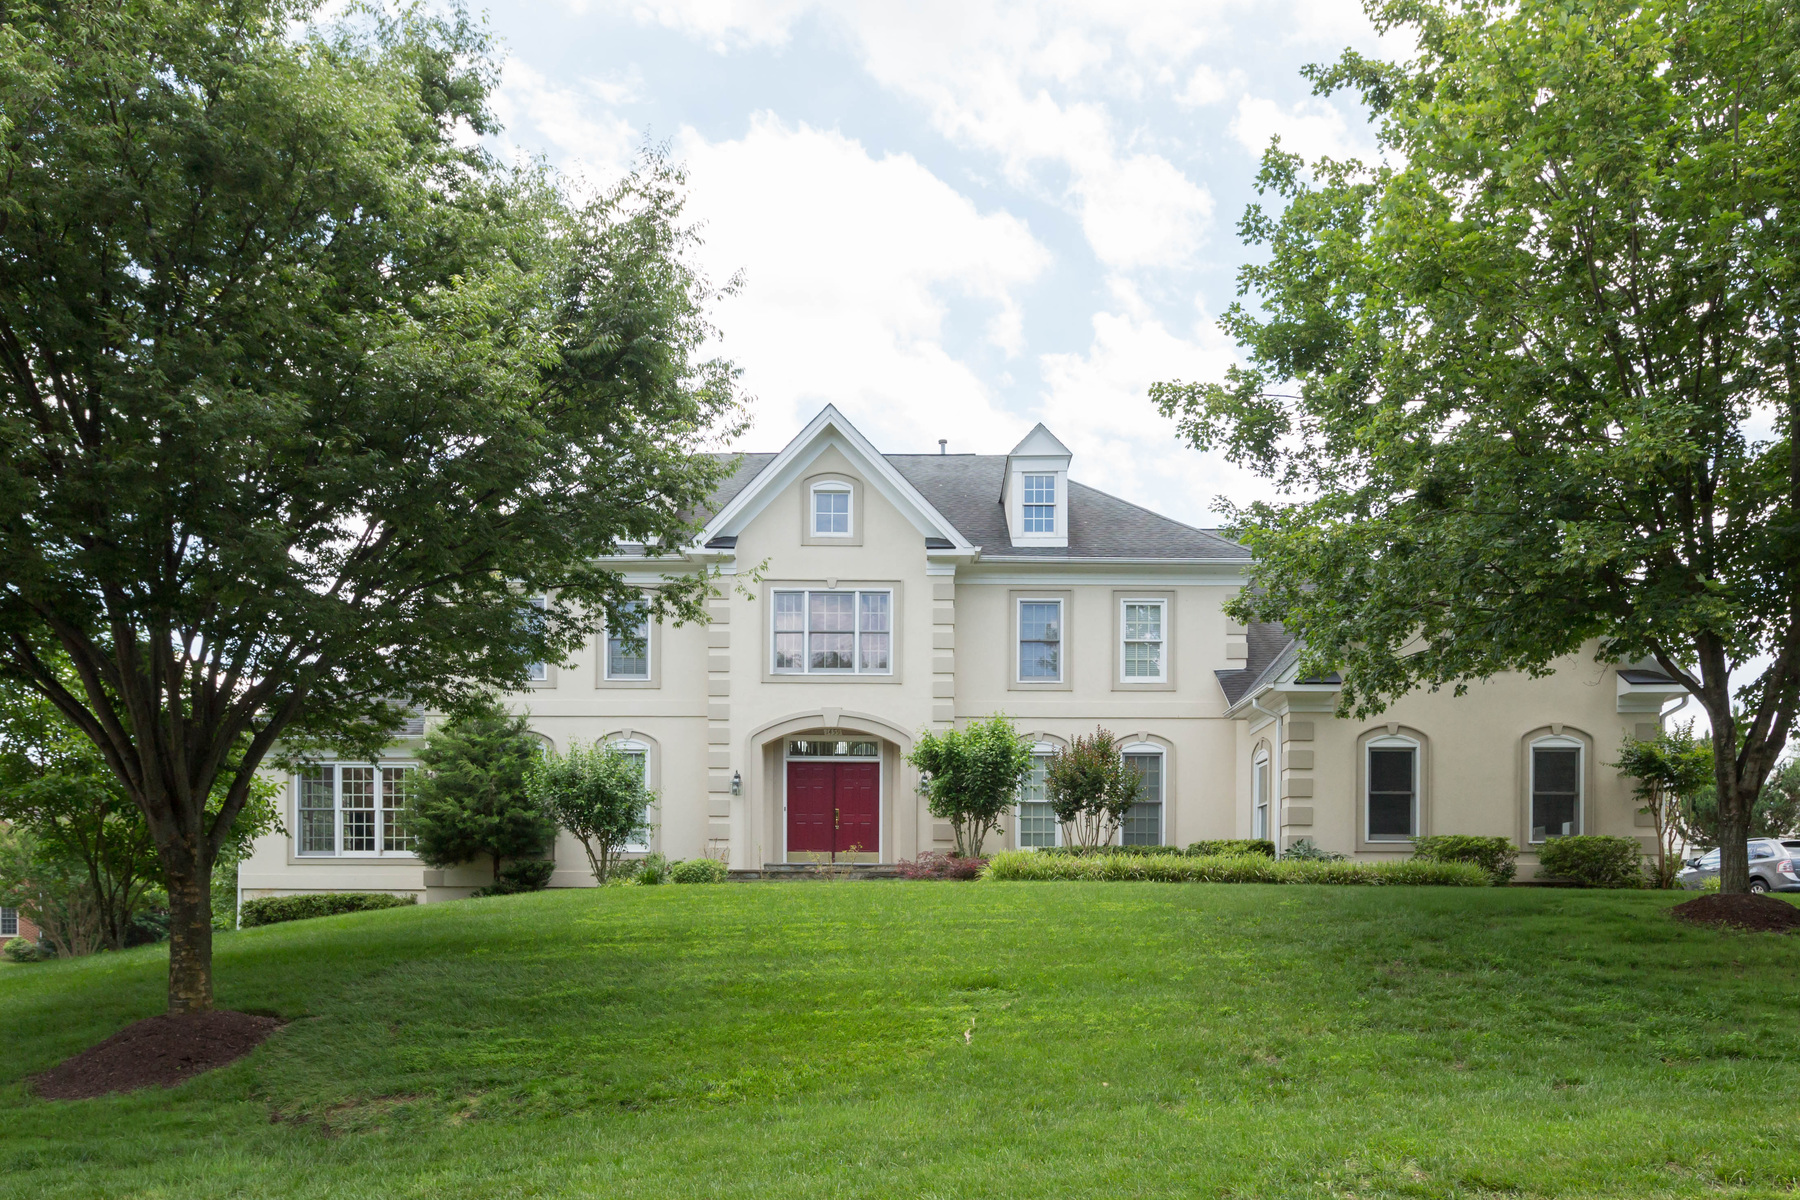 Single Family Home for Rent at 1459 Mayhurst Boulevard, Mclean 1459 Mayhurst Blvd McLean, Virginia 22102 United States